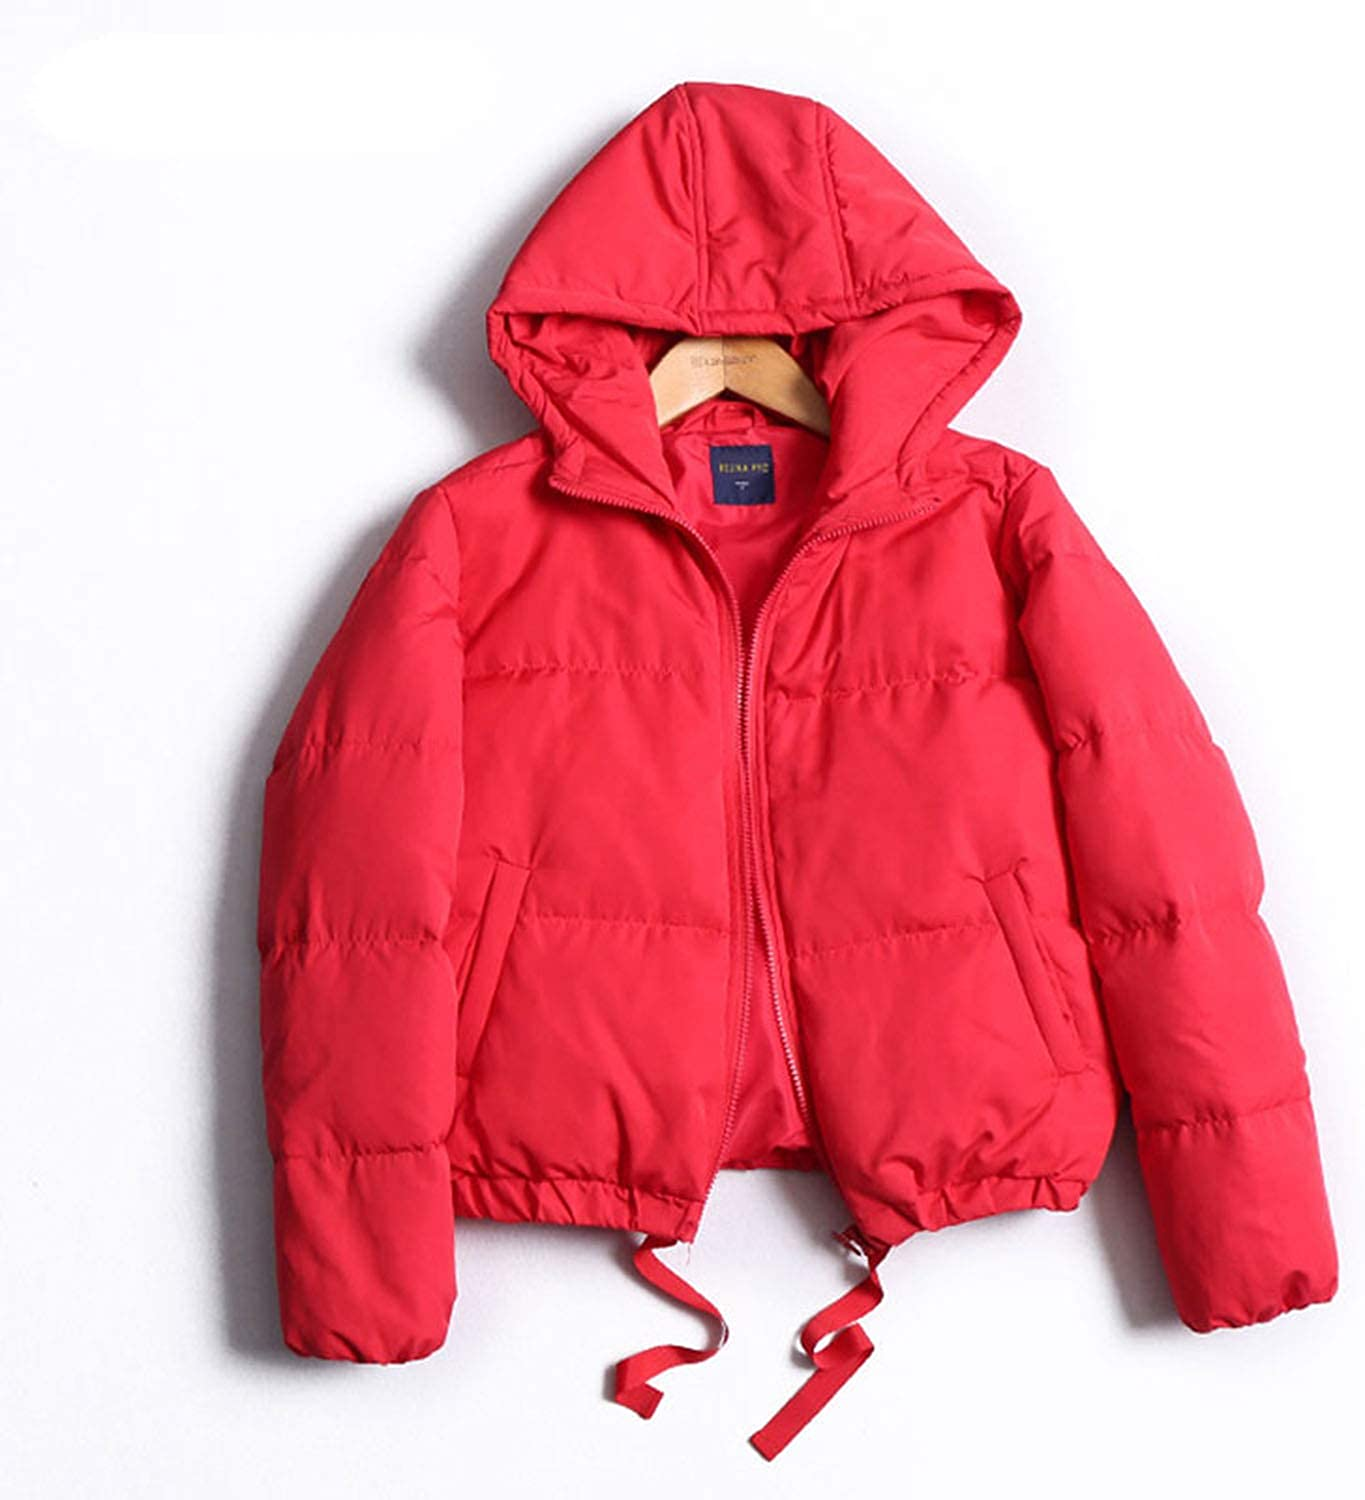 I'll NEVER BE HER Women Winter Red White Duck Down Short Casual AllMatch Thick Warm Hooded Coat Outerwear